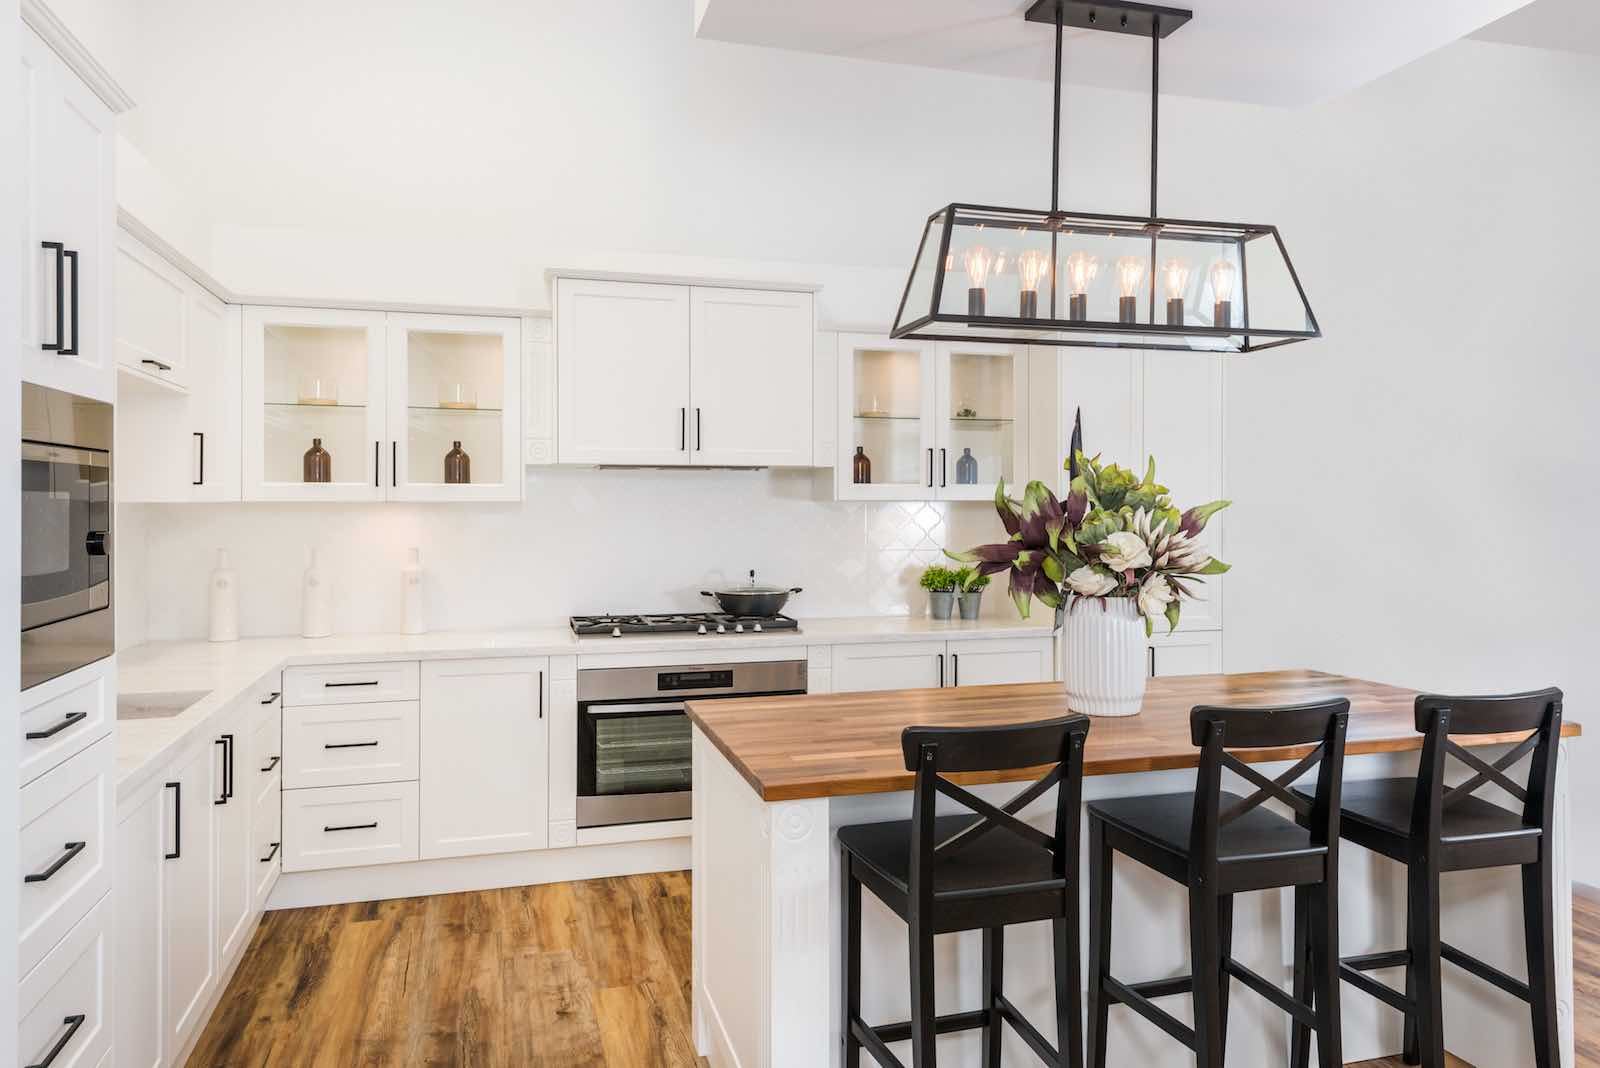 Uncategorized Brisbane Kitchen Design brisbane kitchens shaker style kitchen connection here is a that you can see on display at our north lakes design showroom